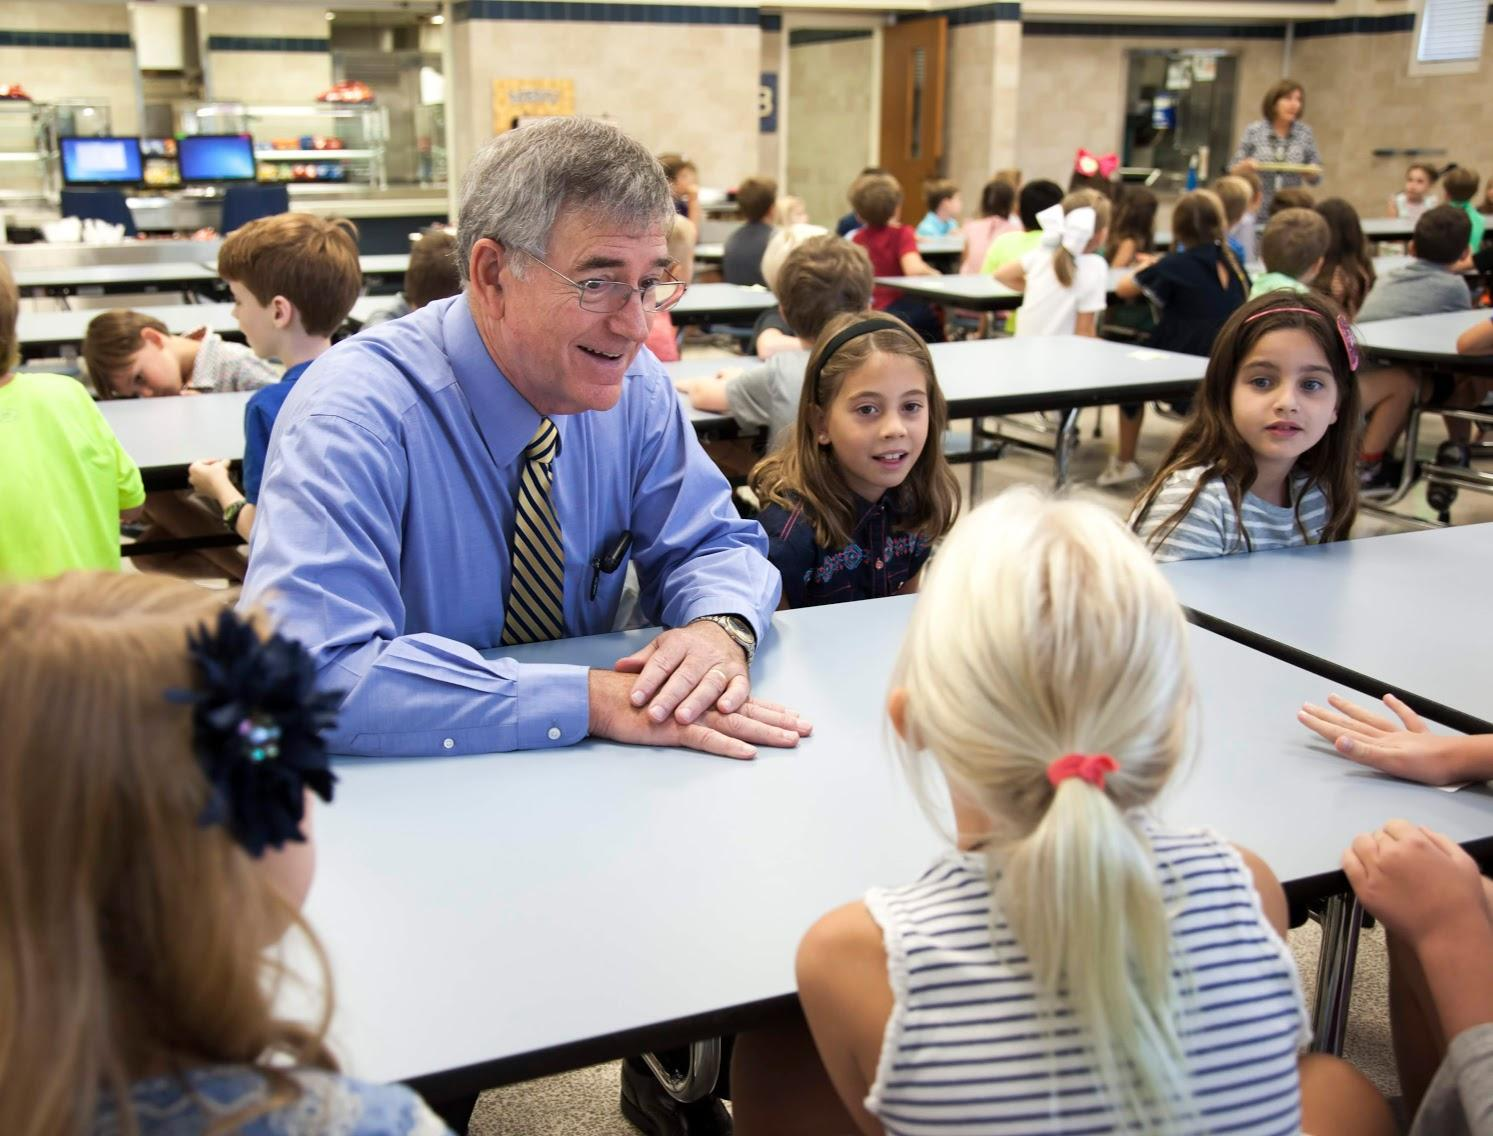 Dr. Trigg having lunch with elementary students in the cafeteria